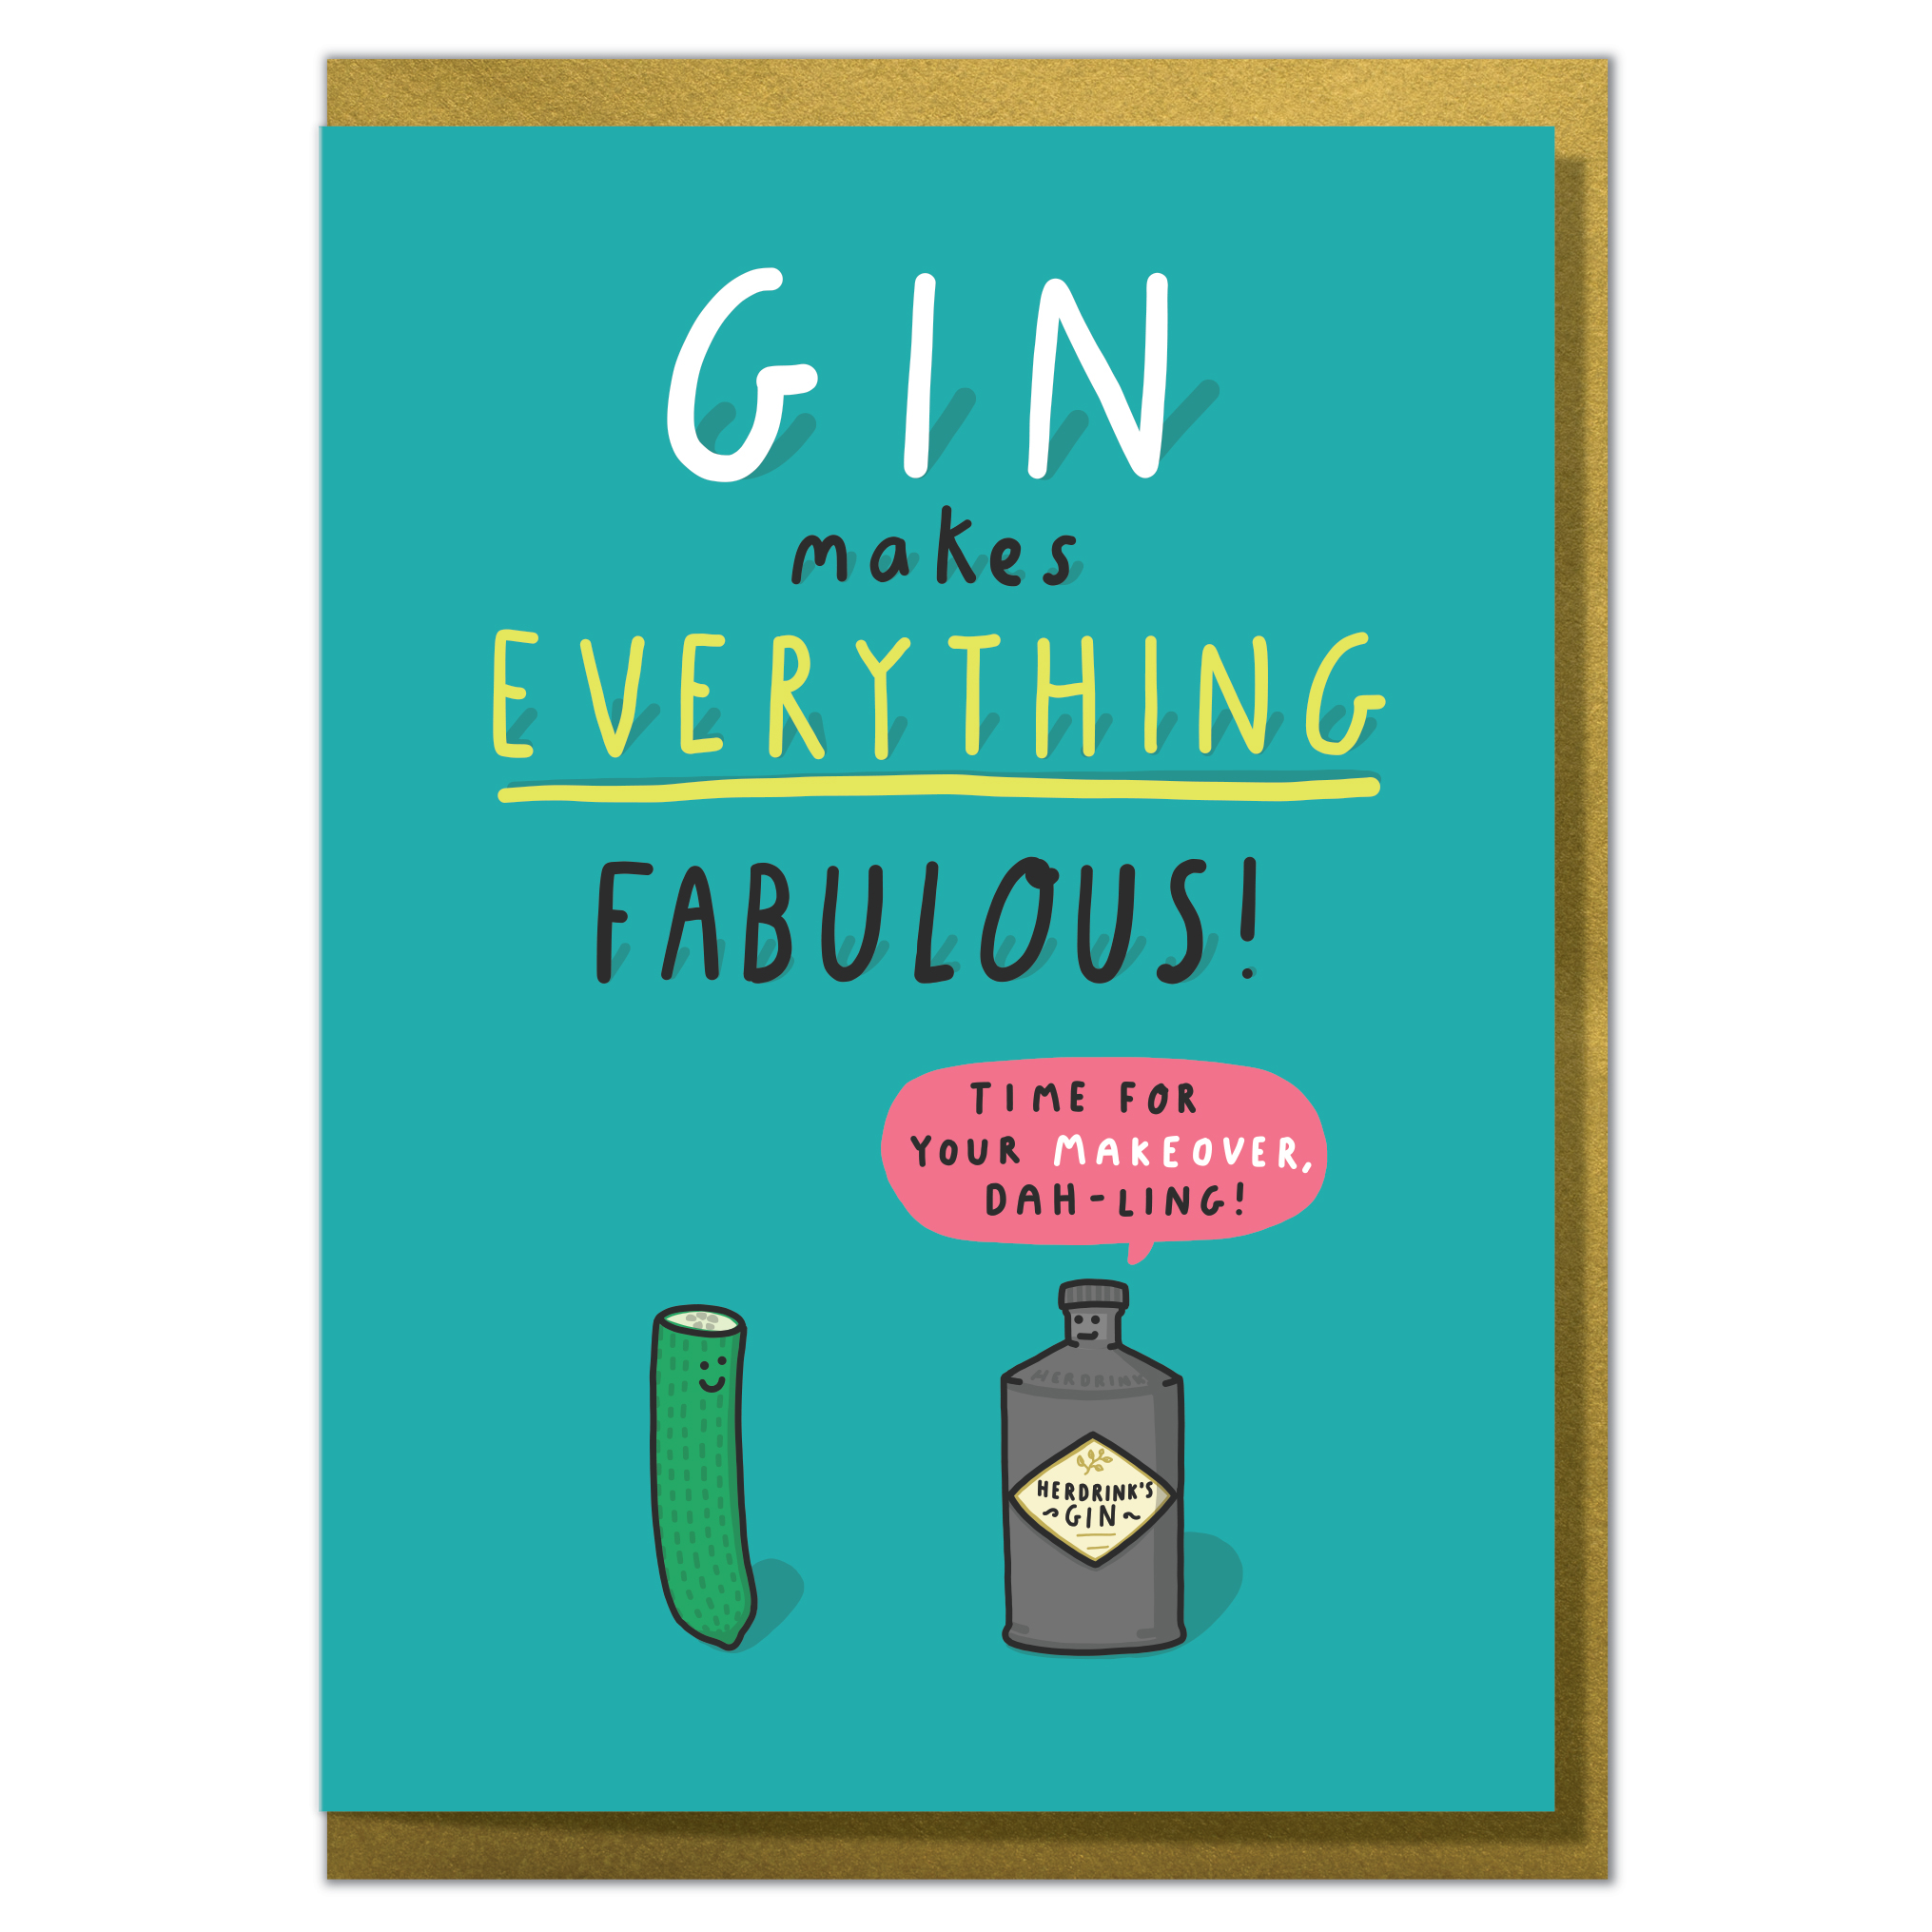 Yi68 Gin Makes Everything Fabulous